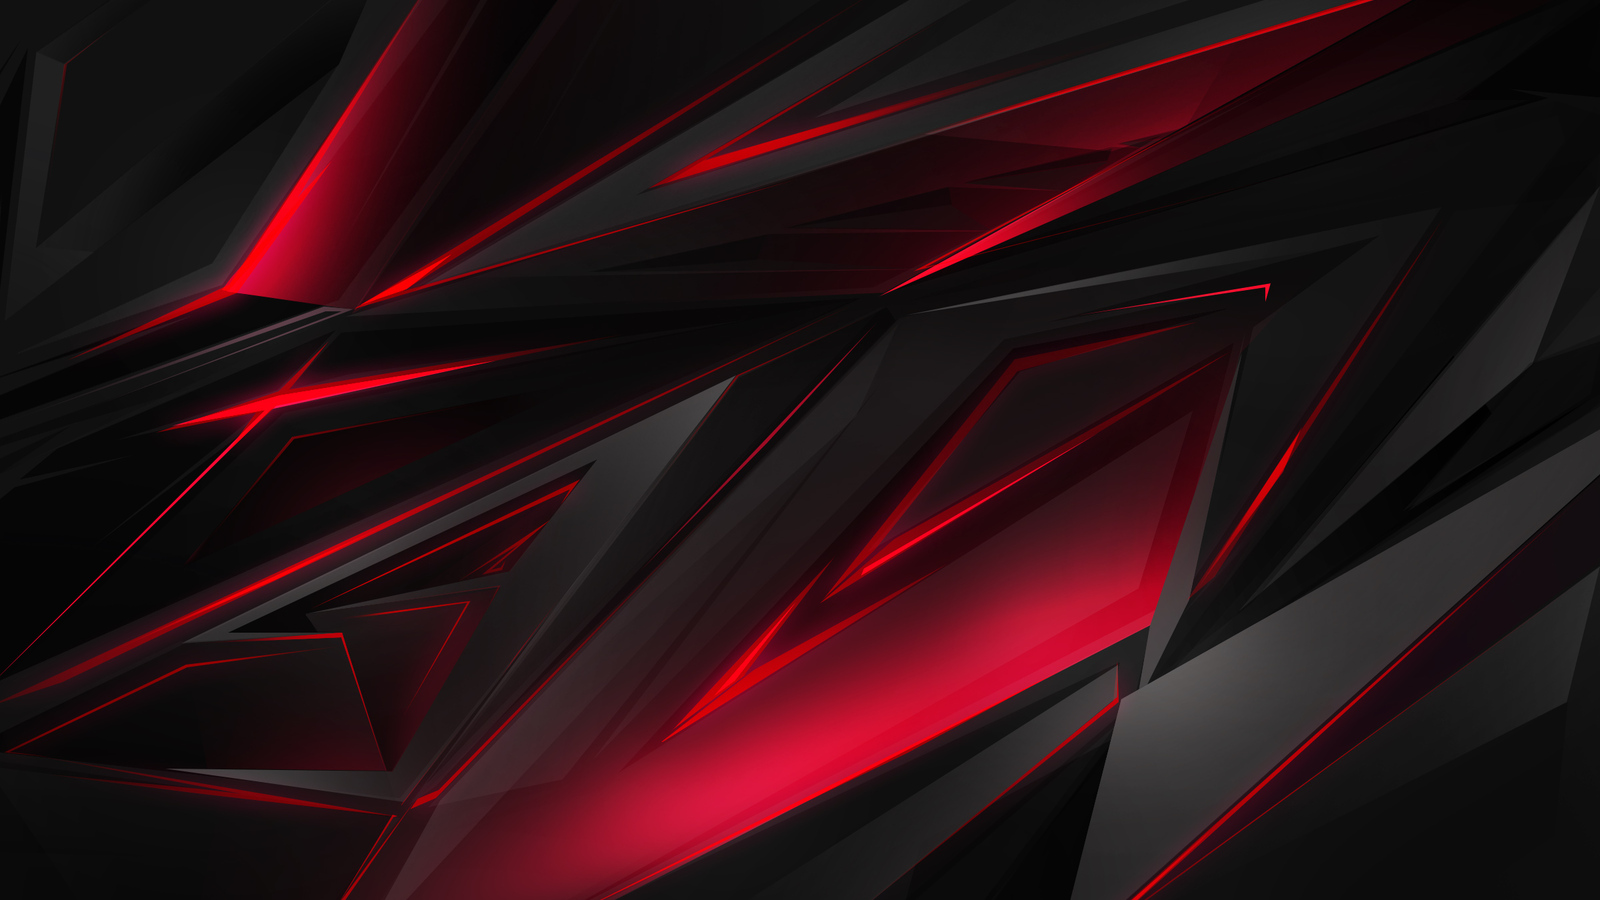 1600x900 Polygonal Abstract Red Dark Background 1600x900